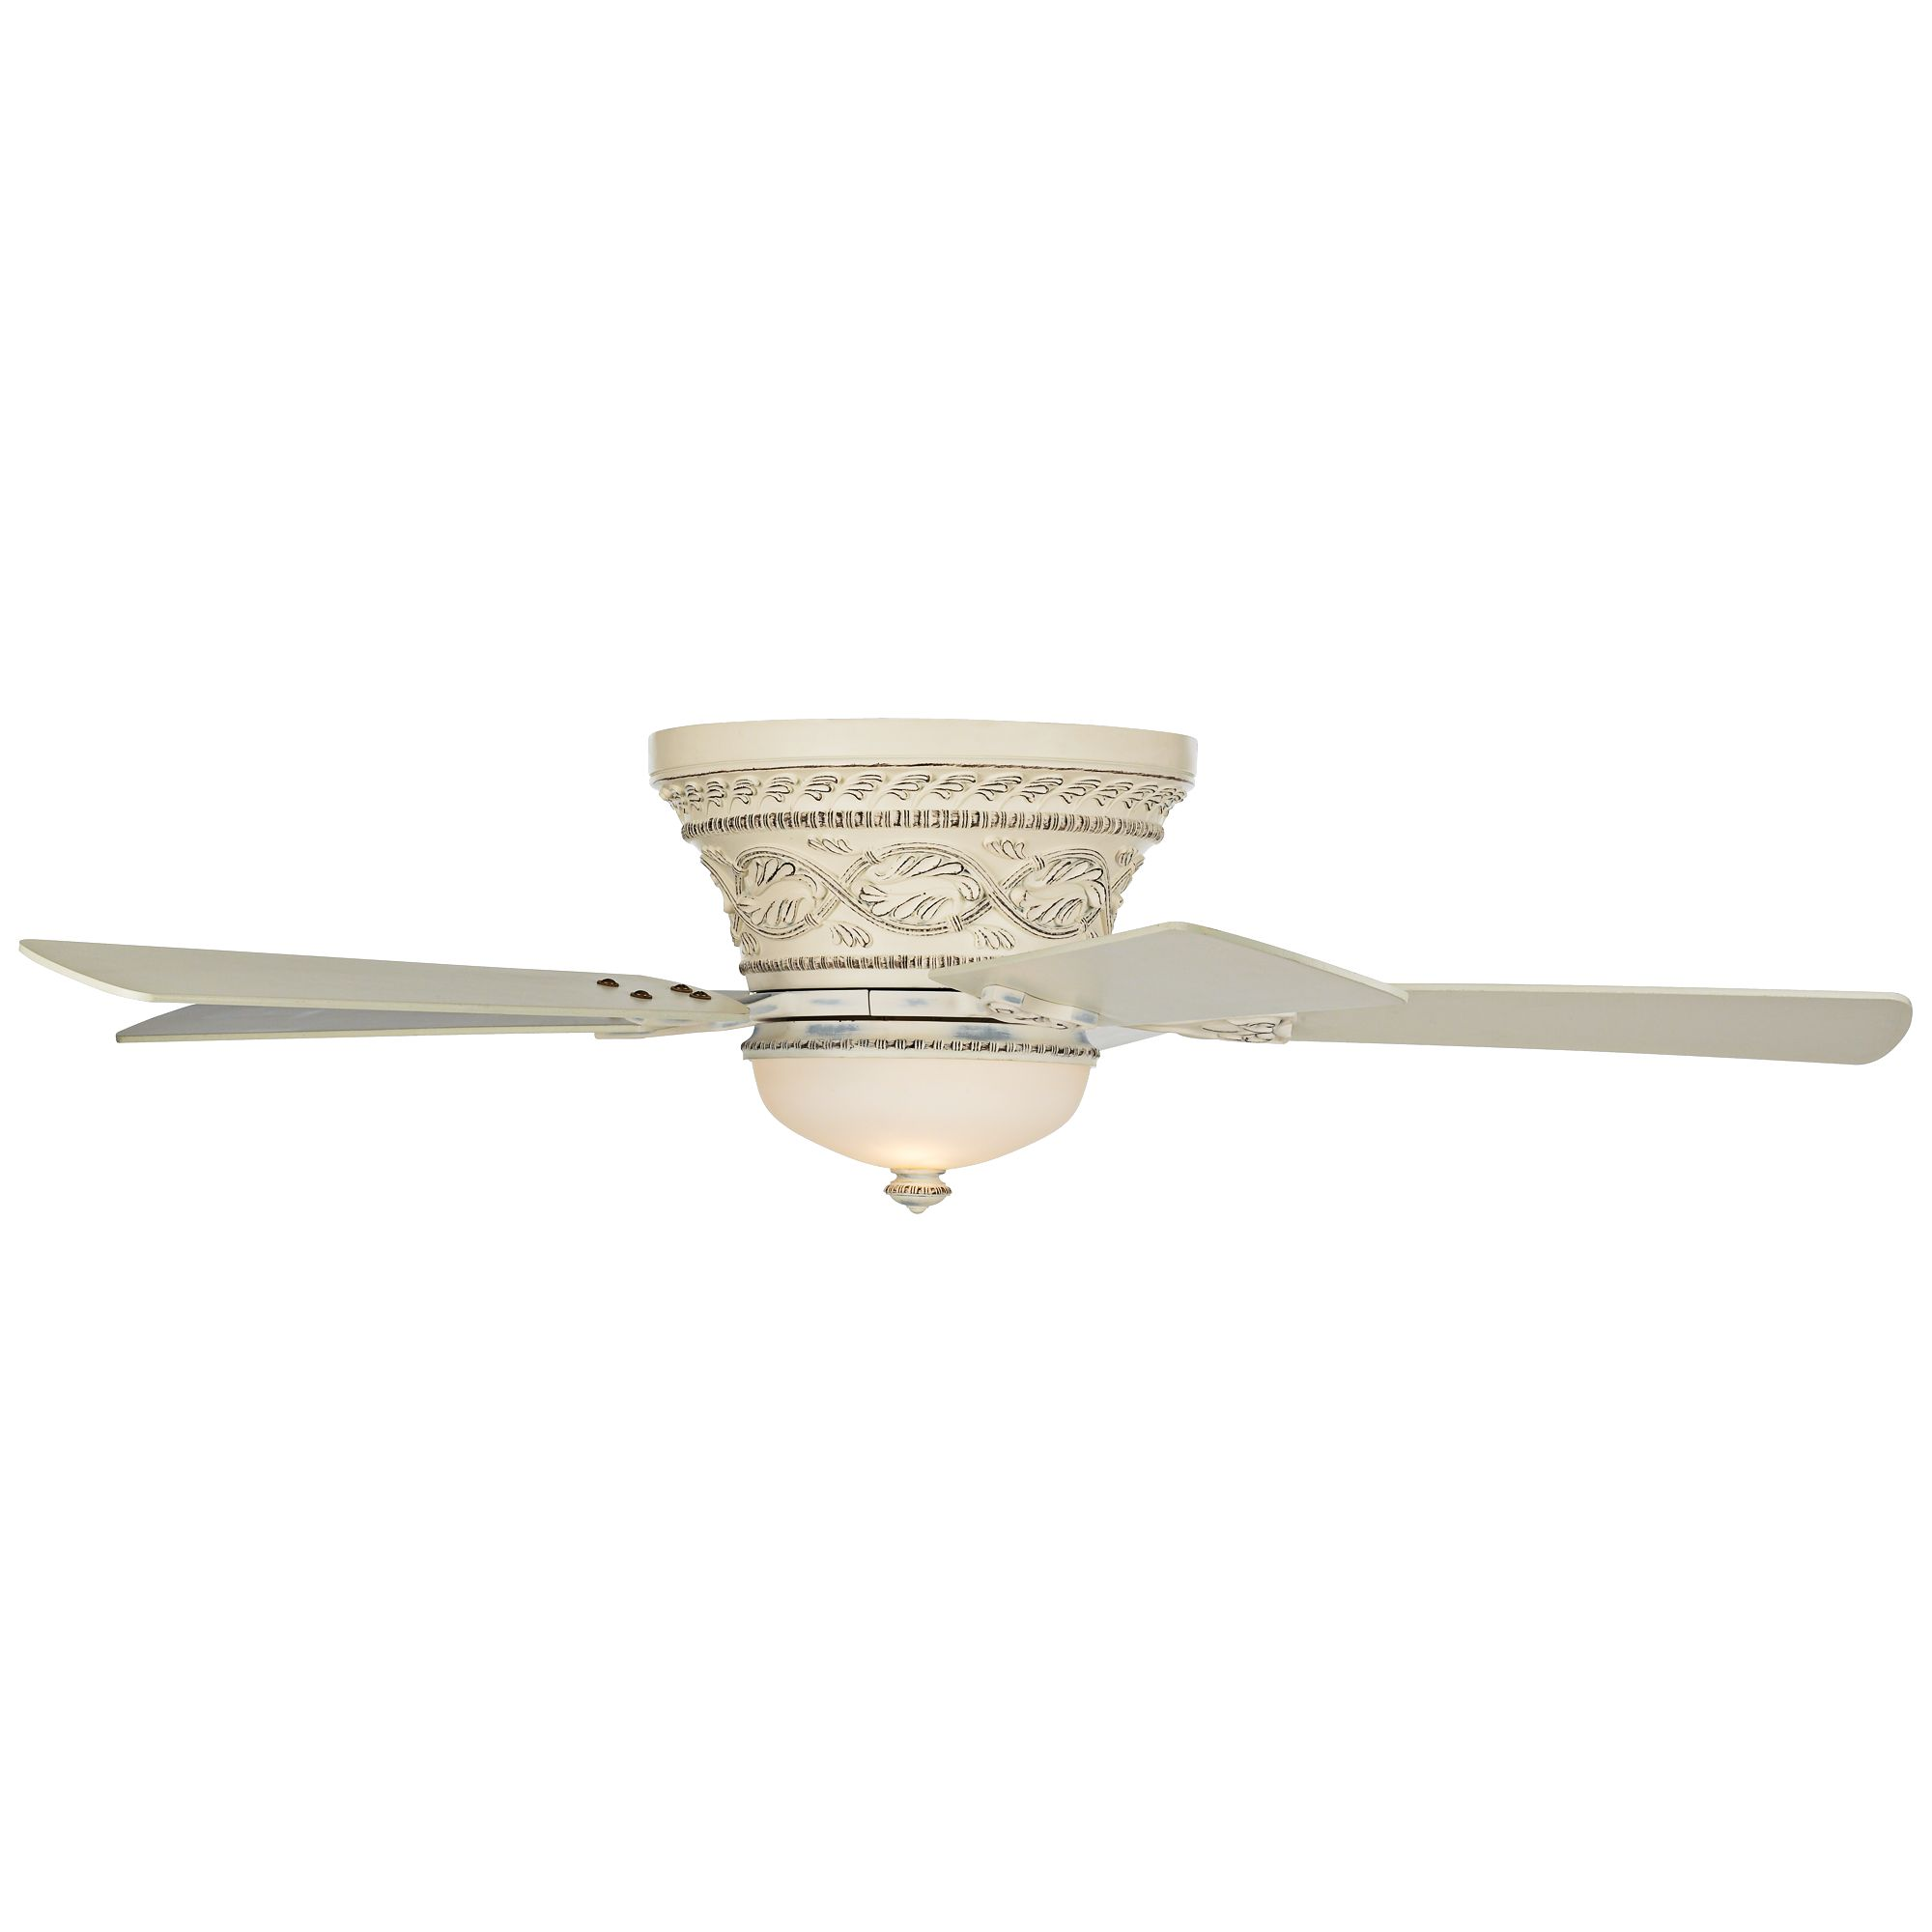 52 Casa Vieja Chic Cottage Hugger Ceiling Fan With Light Wall Control Flush Mount Rubbed White For Living Room Kitchen Bedroom